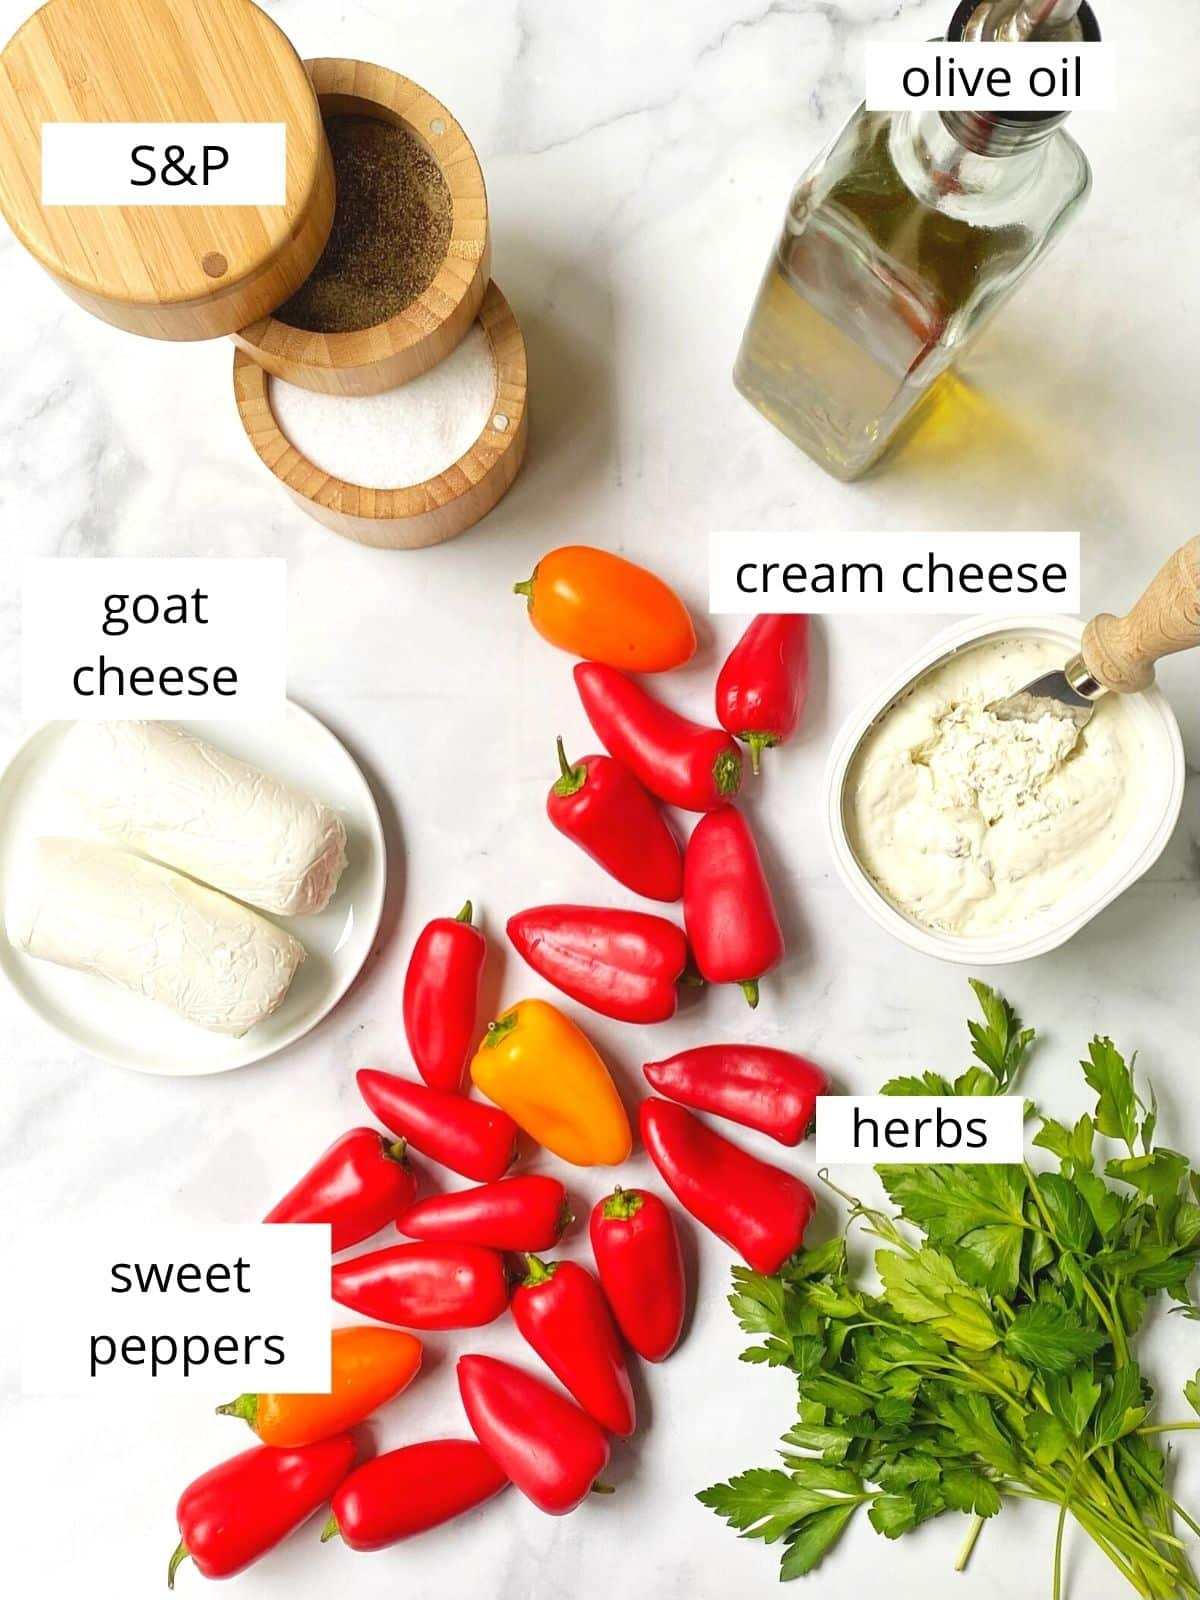 array of ingredients - peppers, goat cheese, cream cheese, herbs, oil, salt and pepper